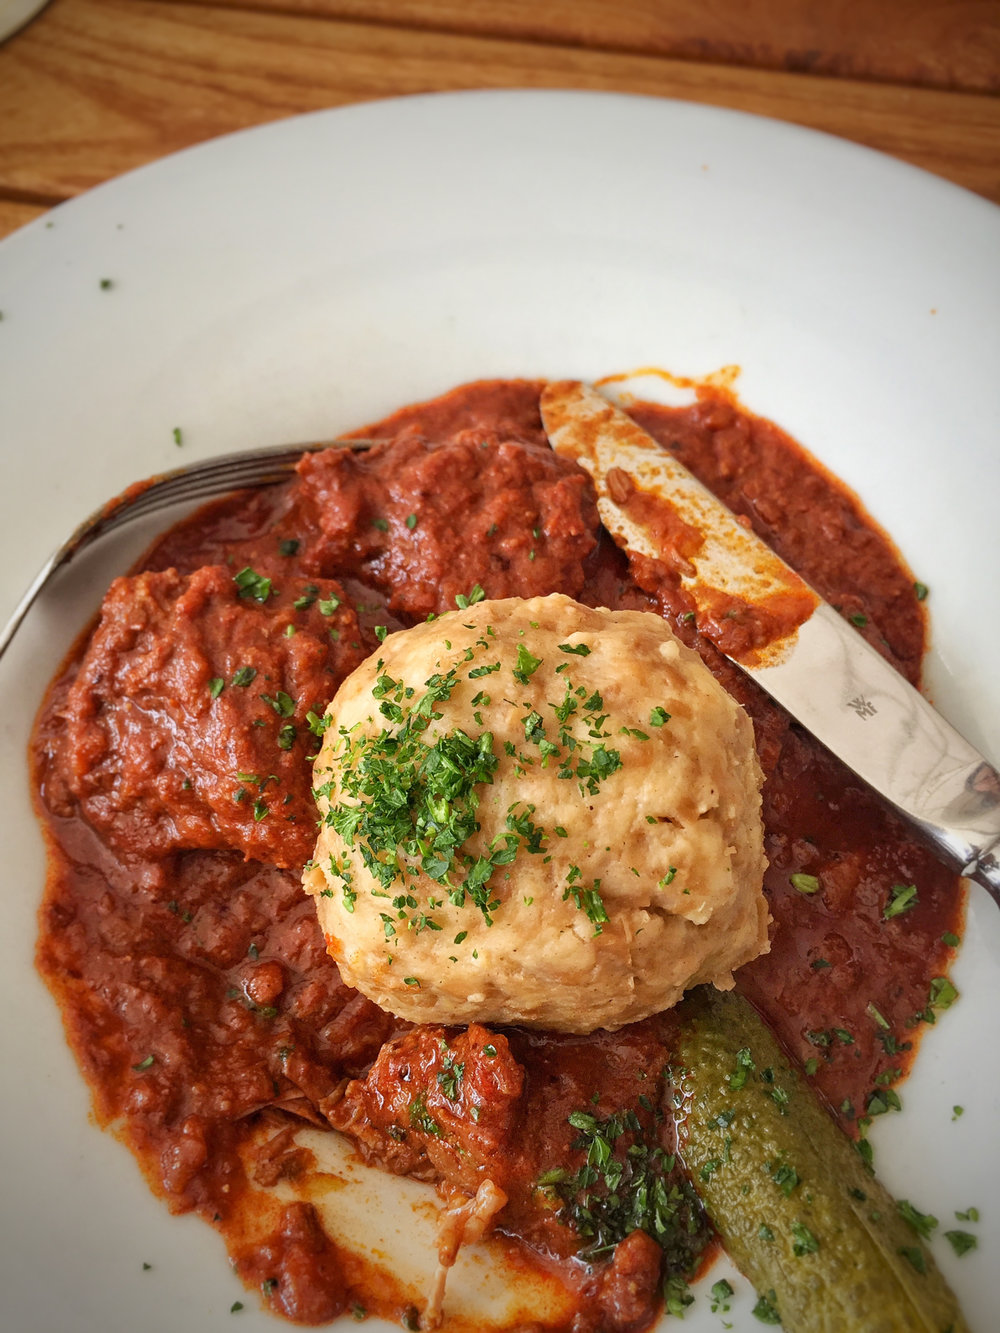 Beef Goulash - This dish also can be seen a lot in Innsbruck as well, I had this one inStiftskeller Restaurant, check this rest restaurant more like a beer garden, casual and open spaces, foods are well-presented.